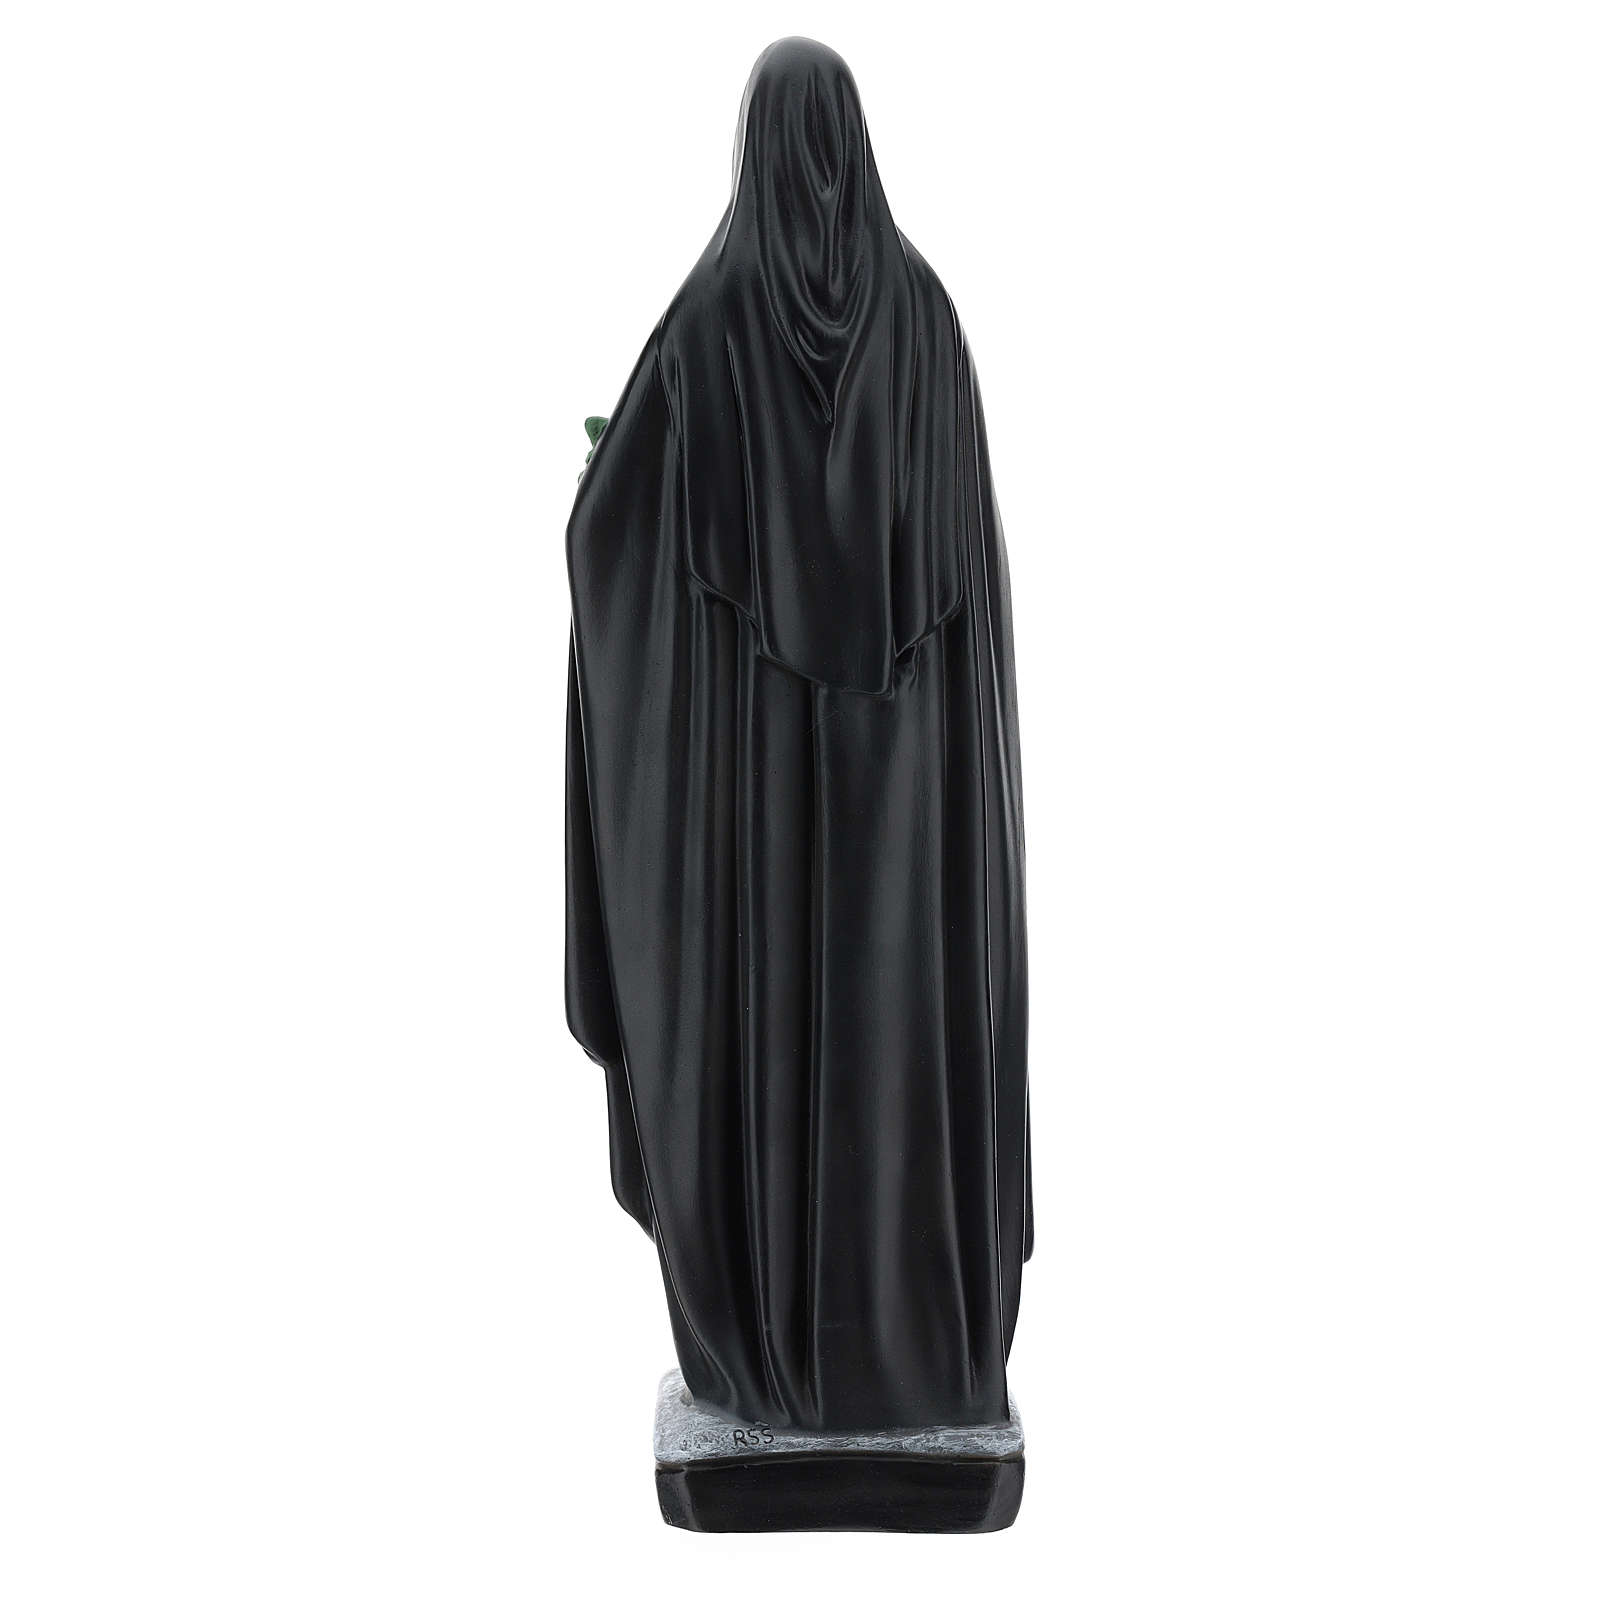 Saint Catherine of Siena statue with flowers and book, 40 cm resin 4